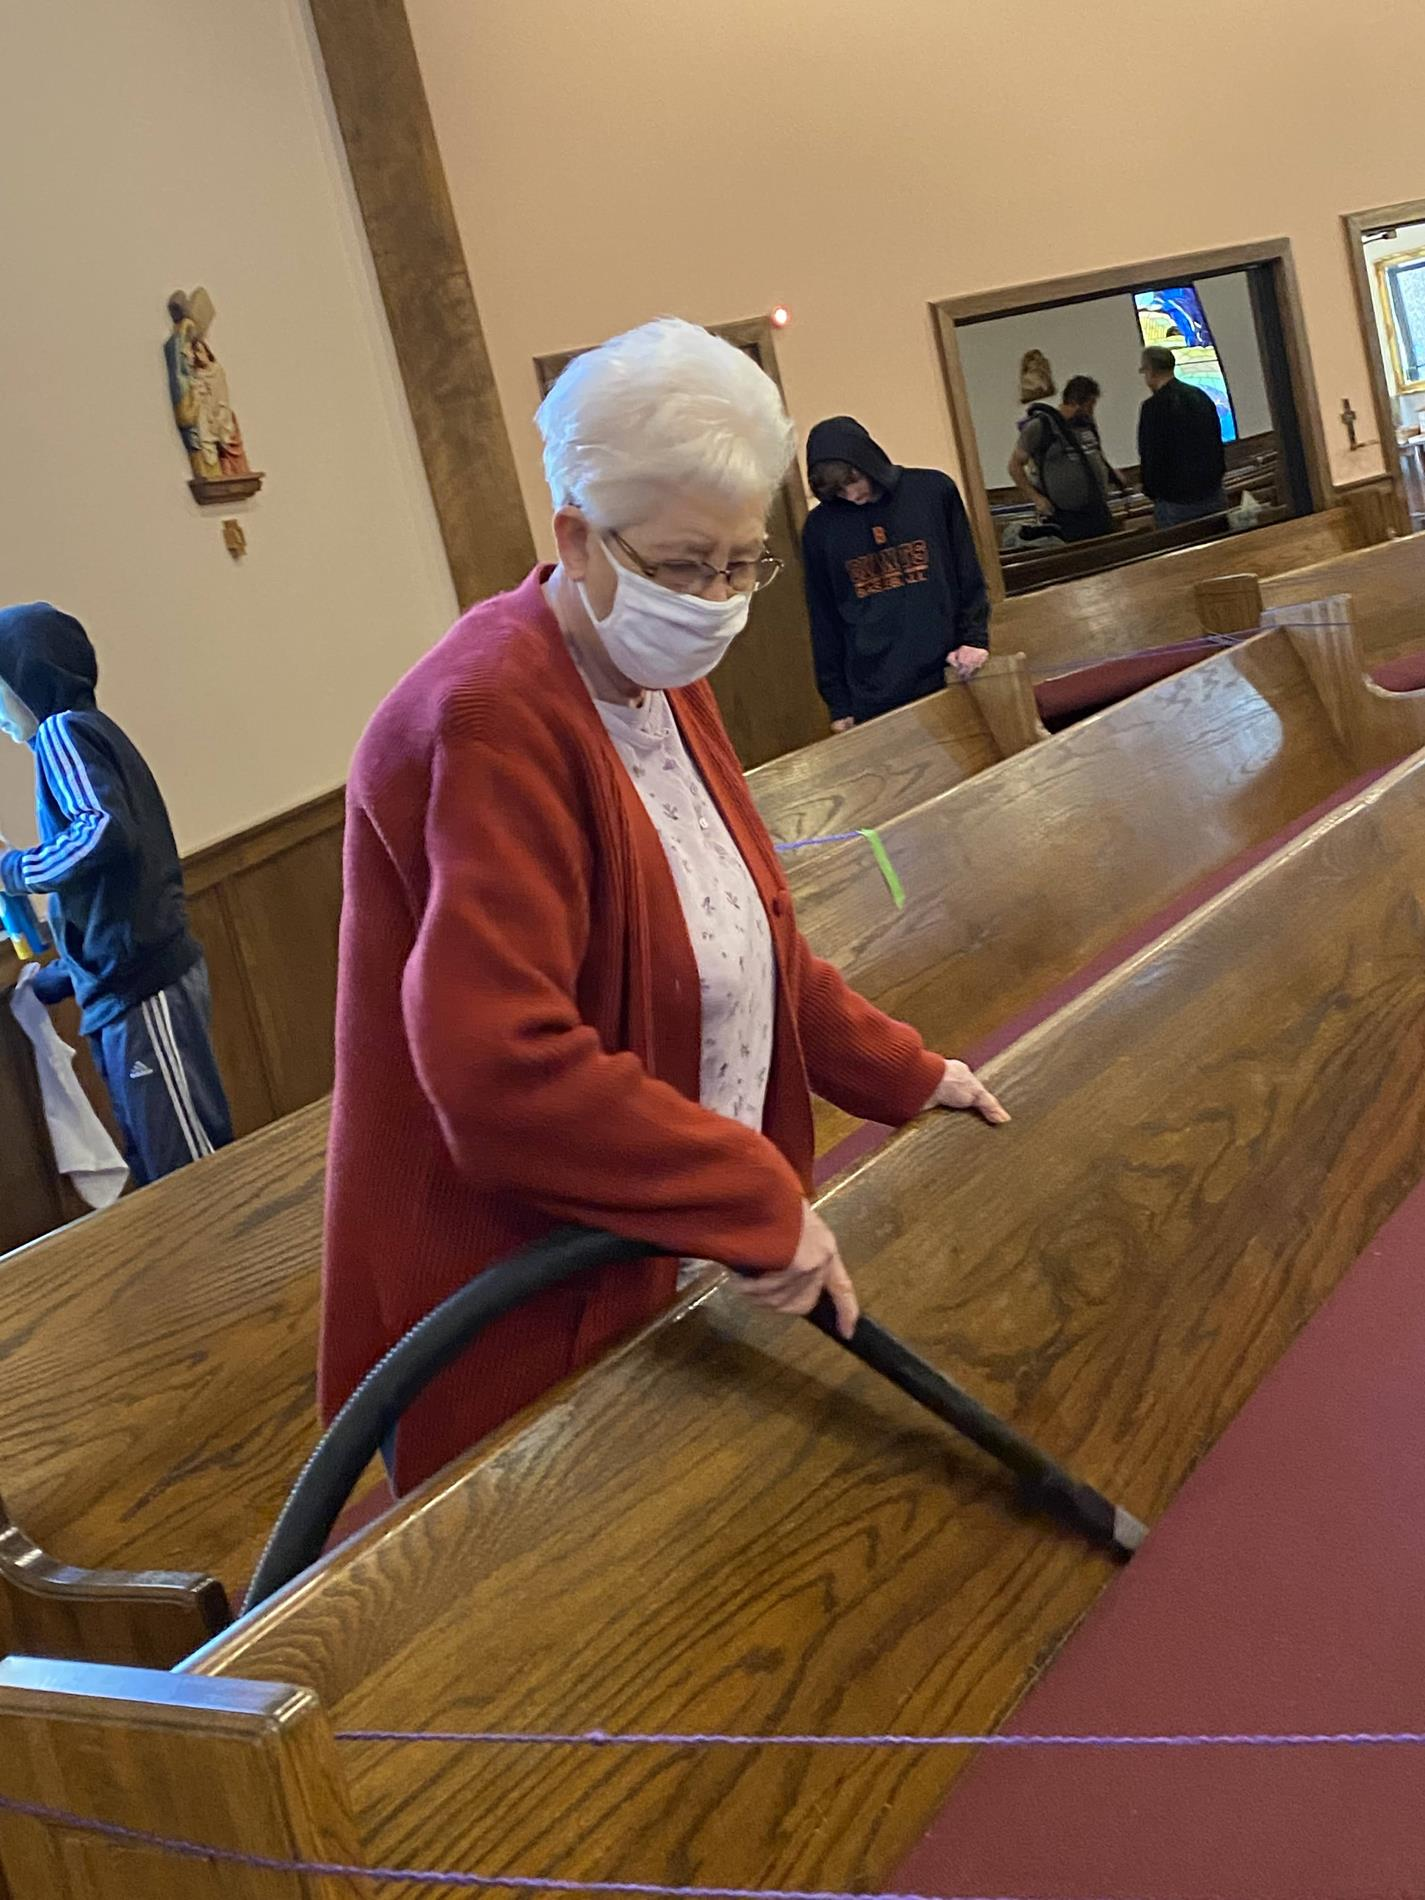 Faithful to cleaning those pews every year